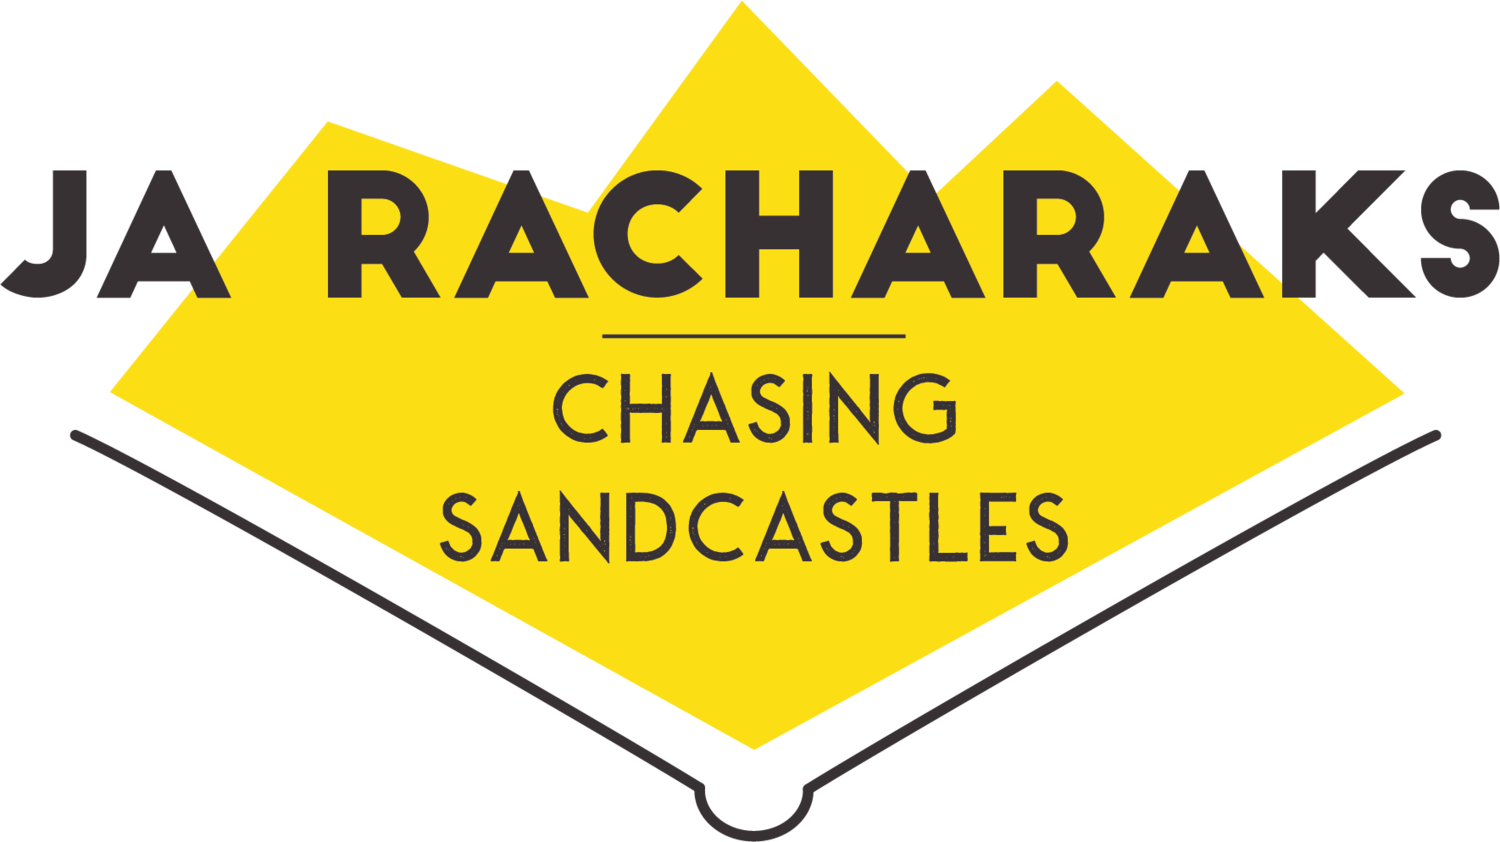 Chasing Sandcastles